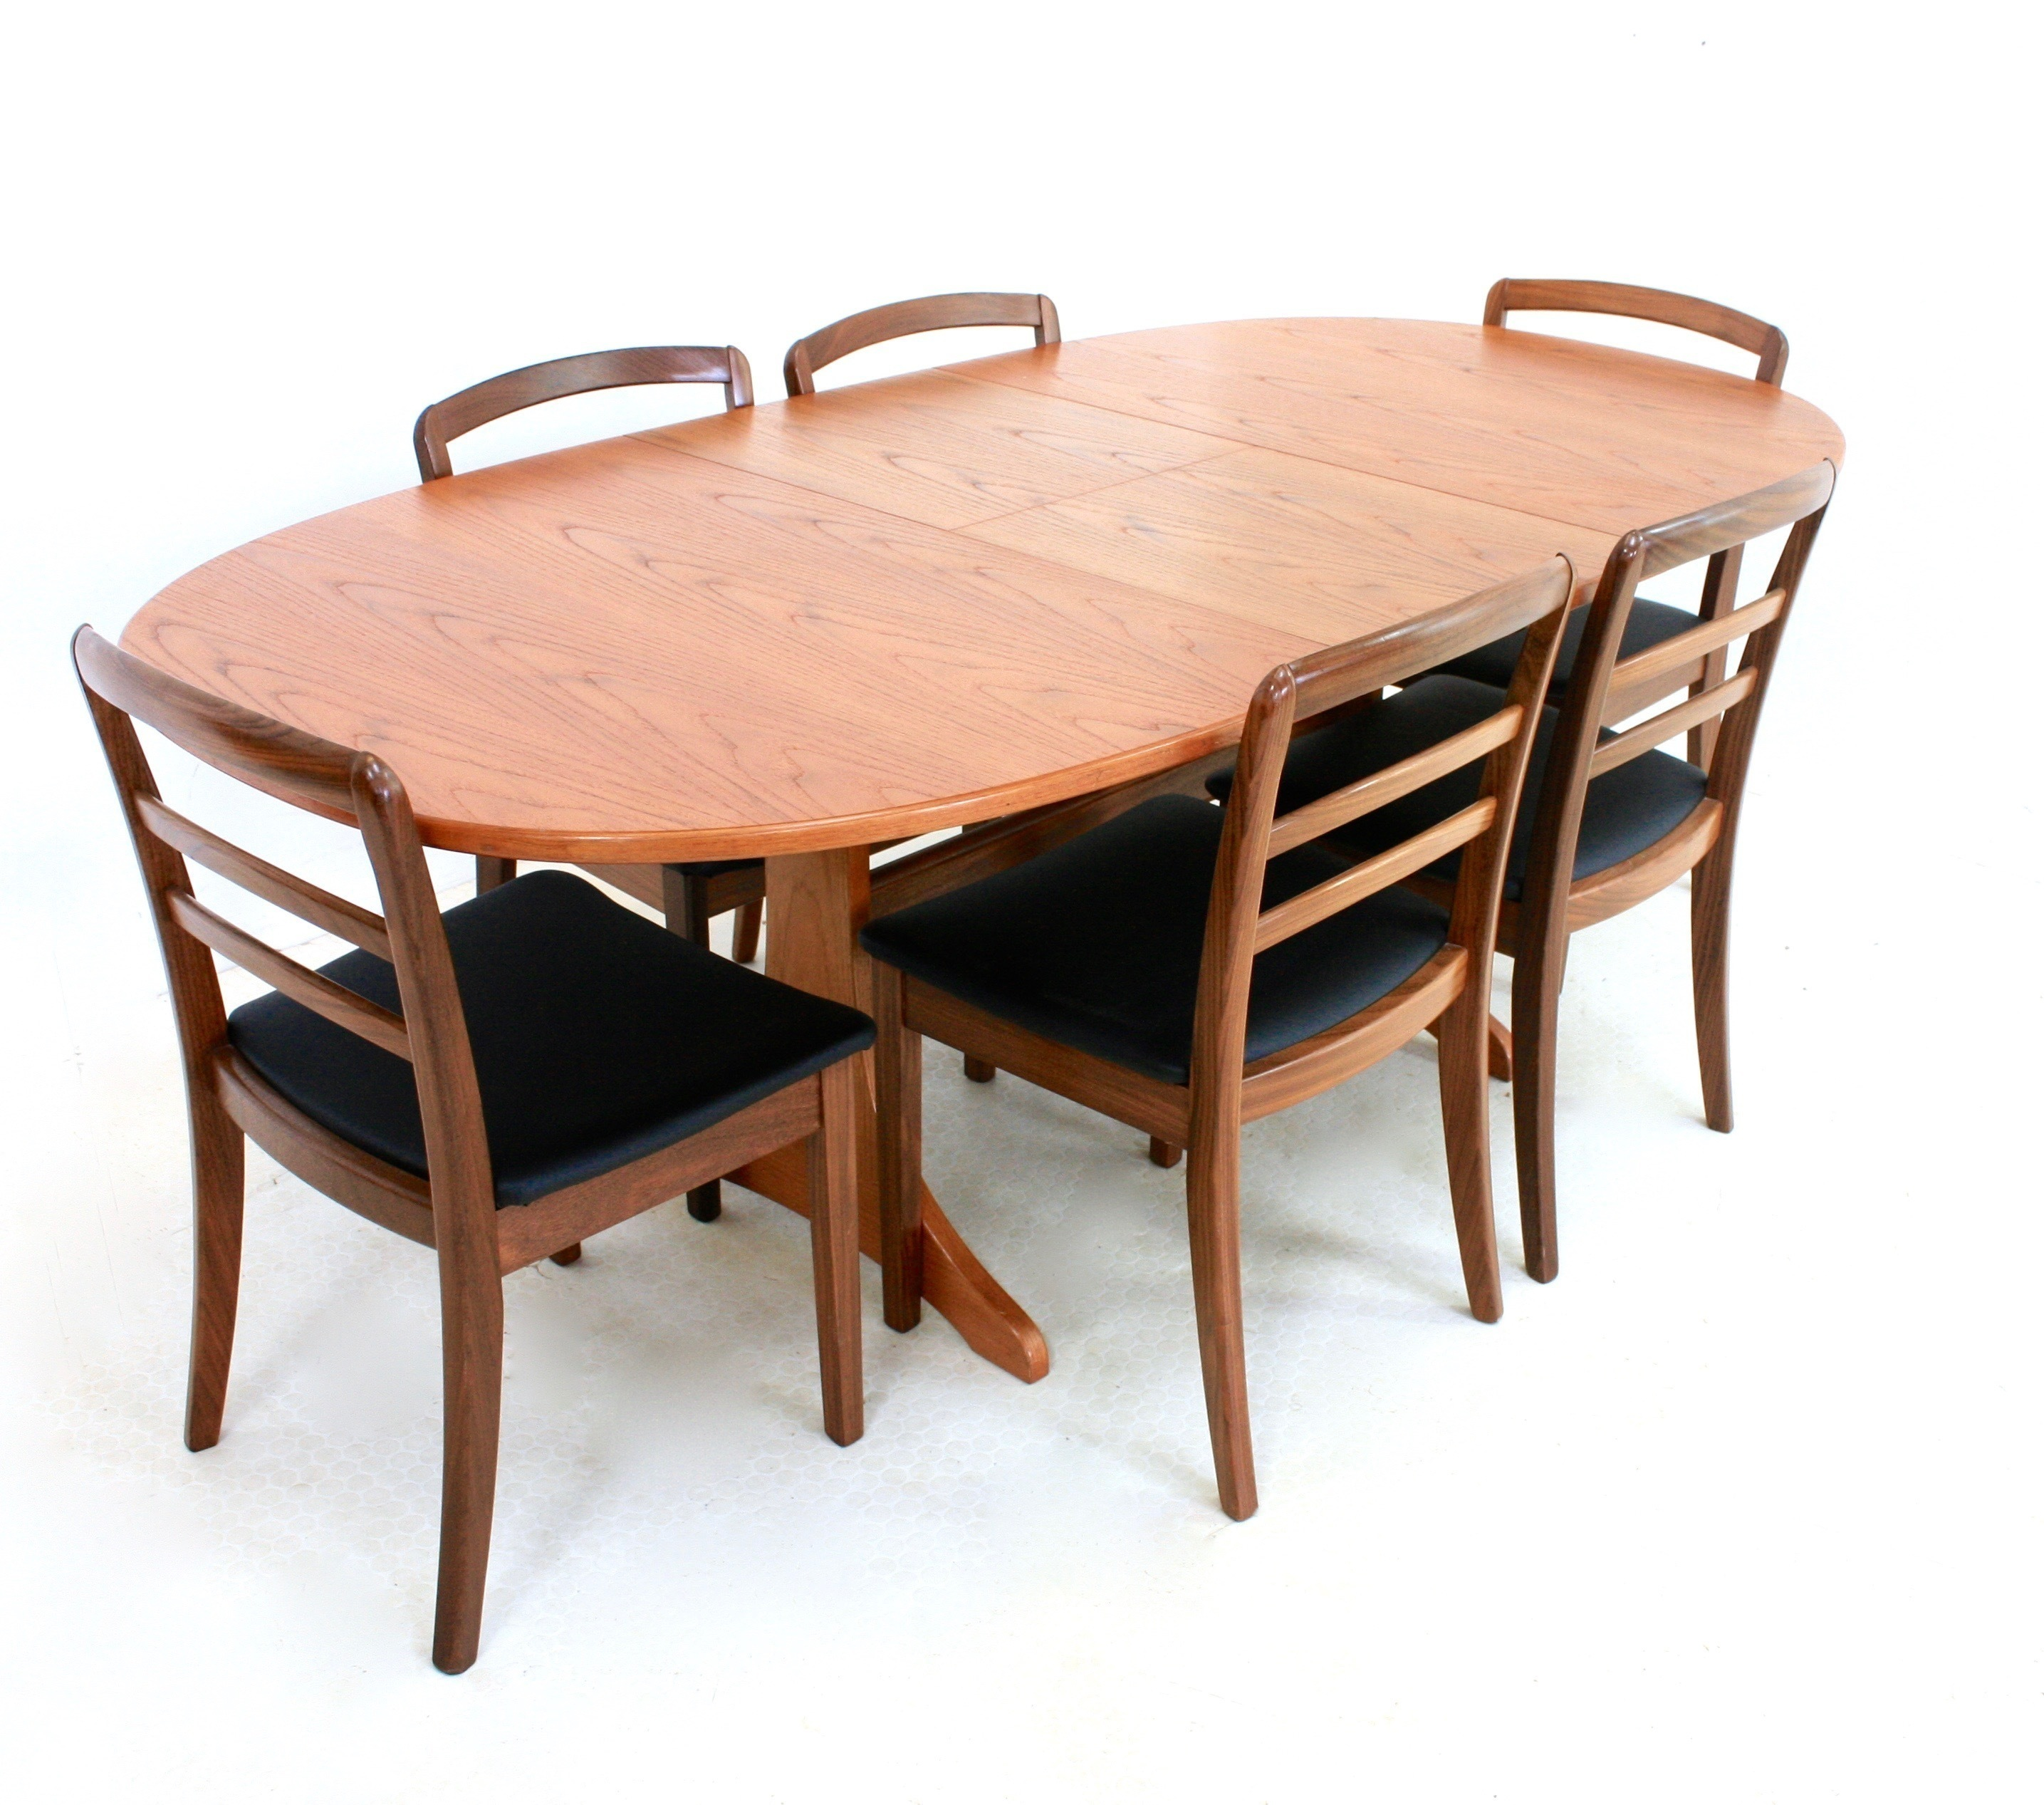 Wondrous Vintage 1970S Teak Danish Influence Dining Table And 6 Chairs By G Plan Cjindustries Chair Design For Home Cjindustriesco